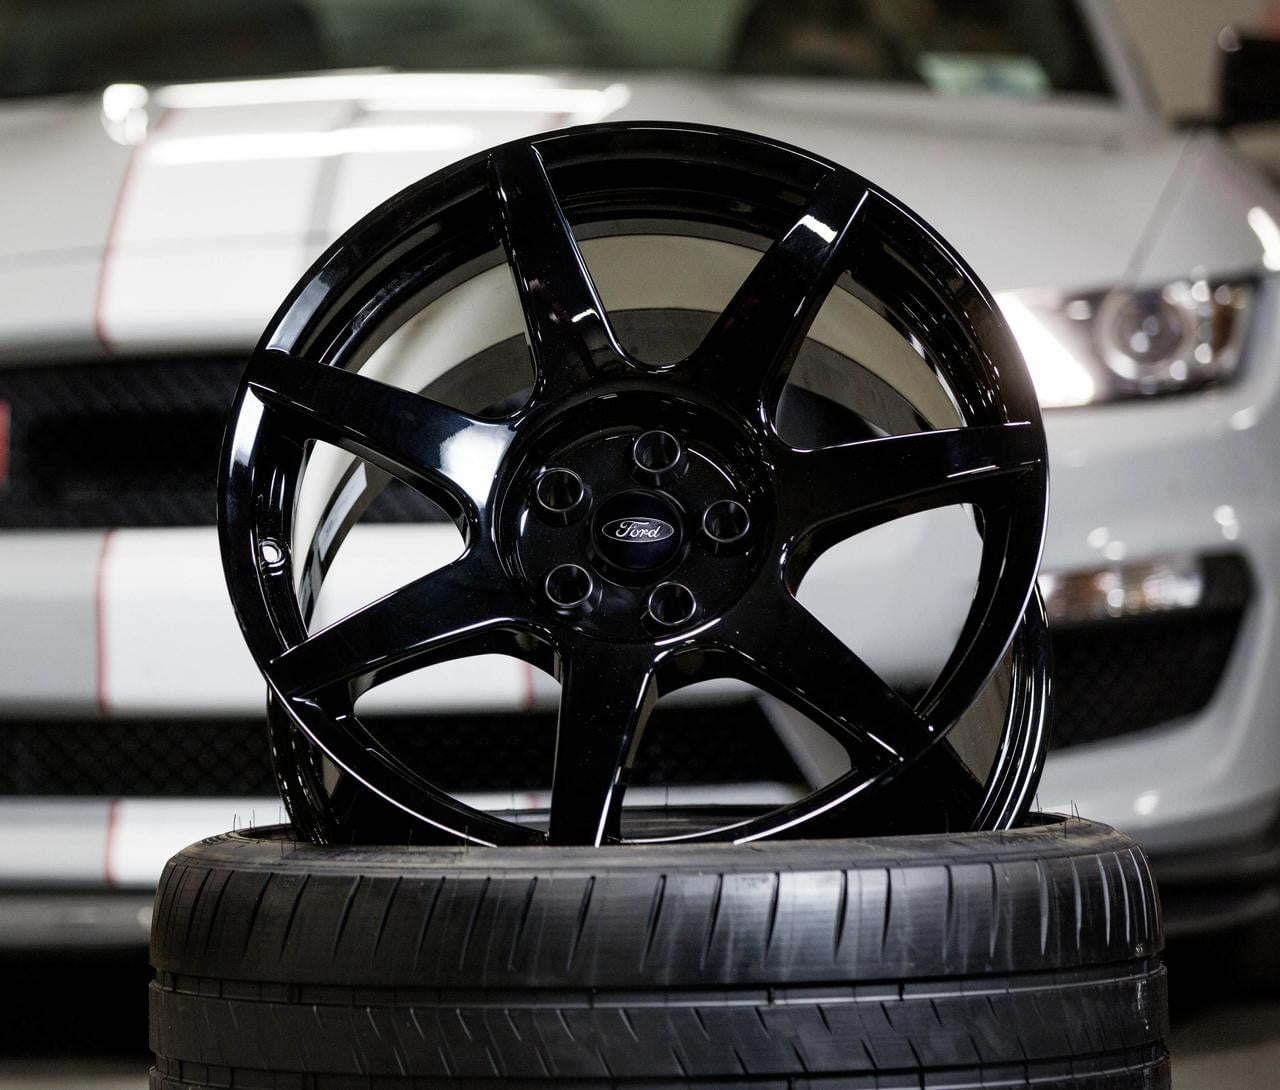 Ford Shelby GT350R Mustang wheel